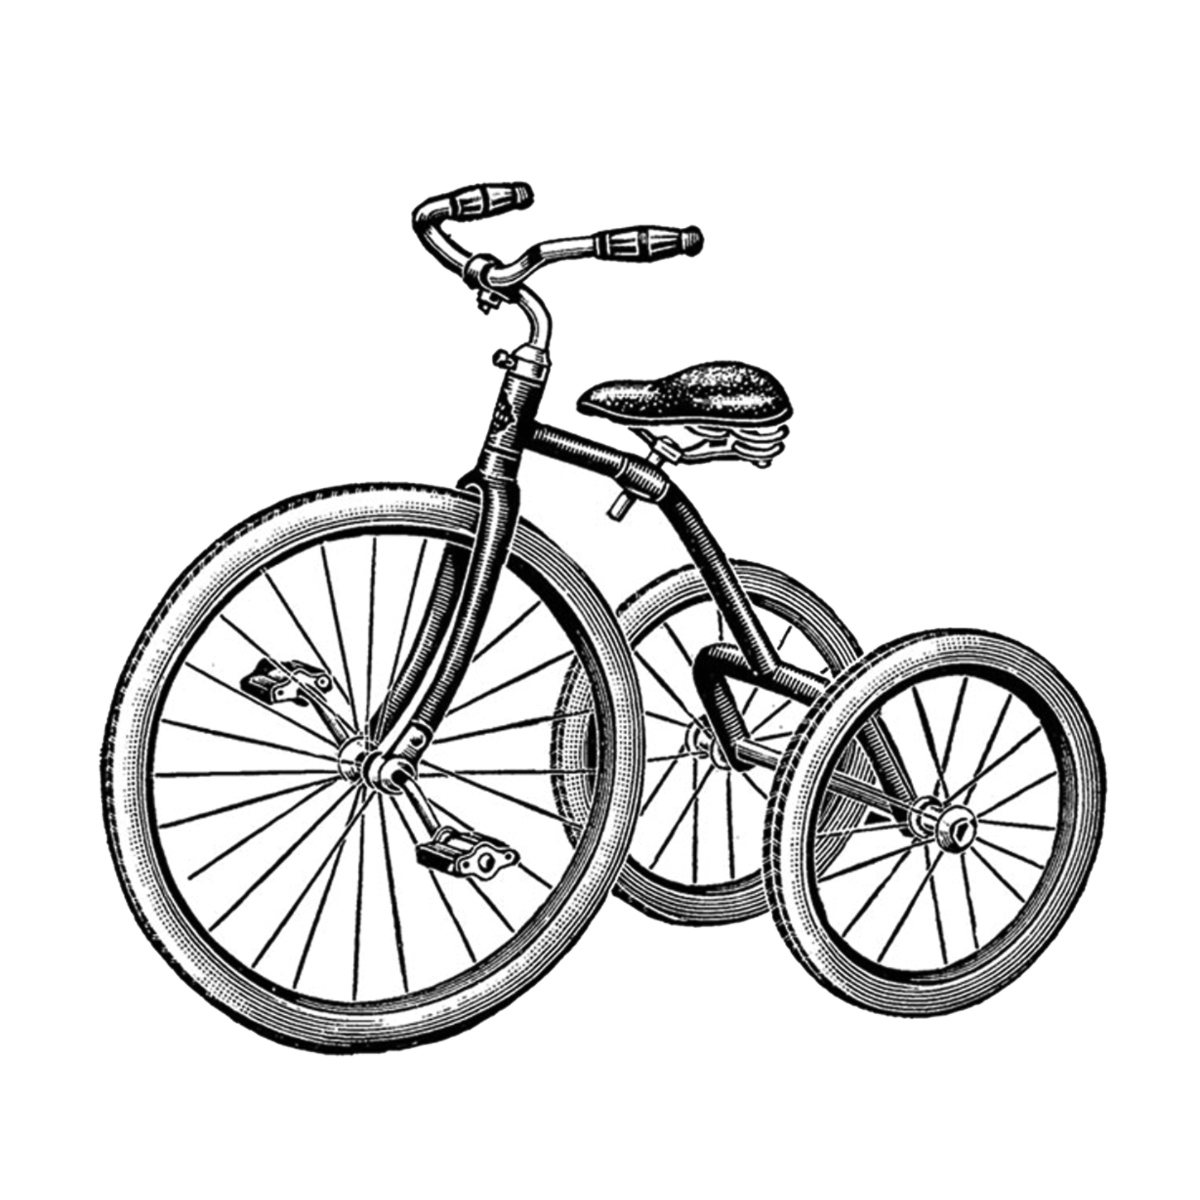 Tricycle clipart black and white 7 » Clipart Station.